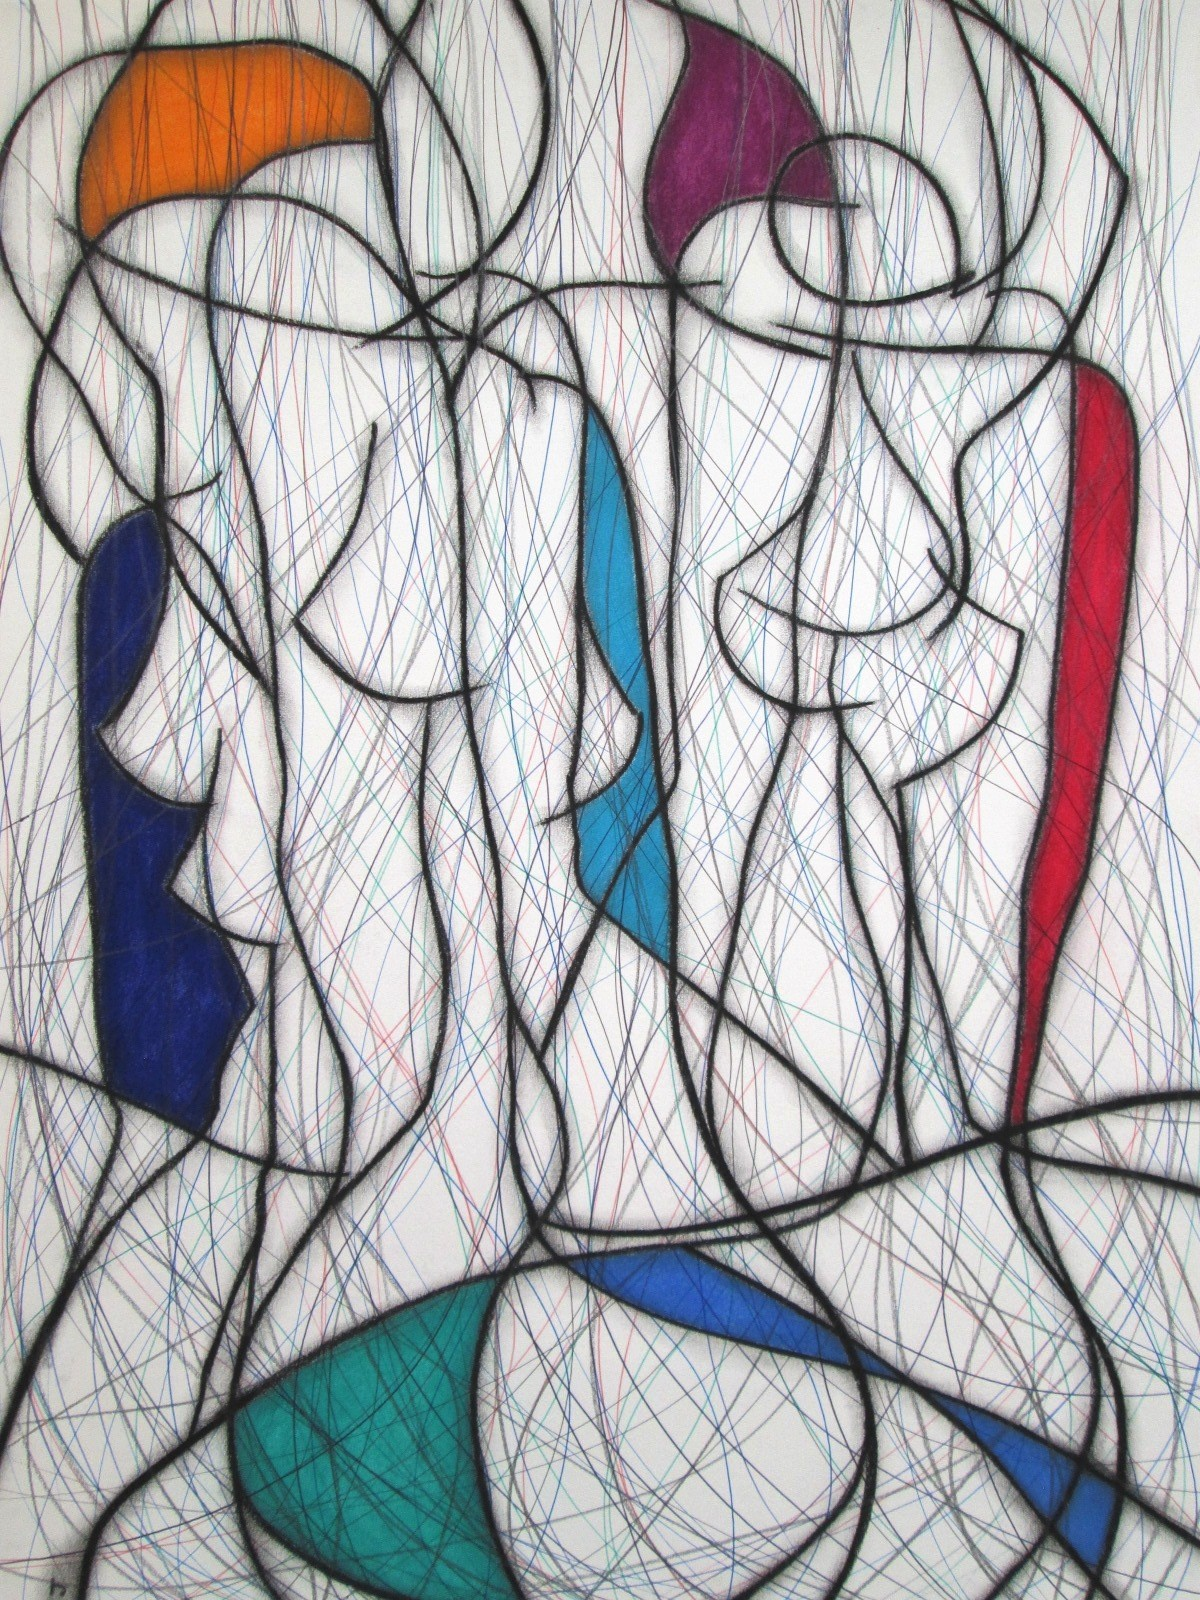 Seven Colour Abstract No 6 artwork by Kevin Jones - art listed for sale on Artplode